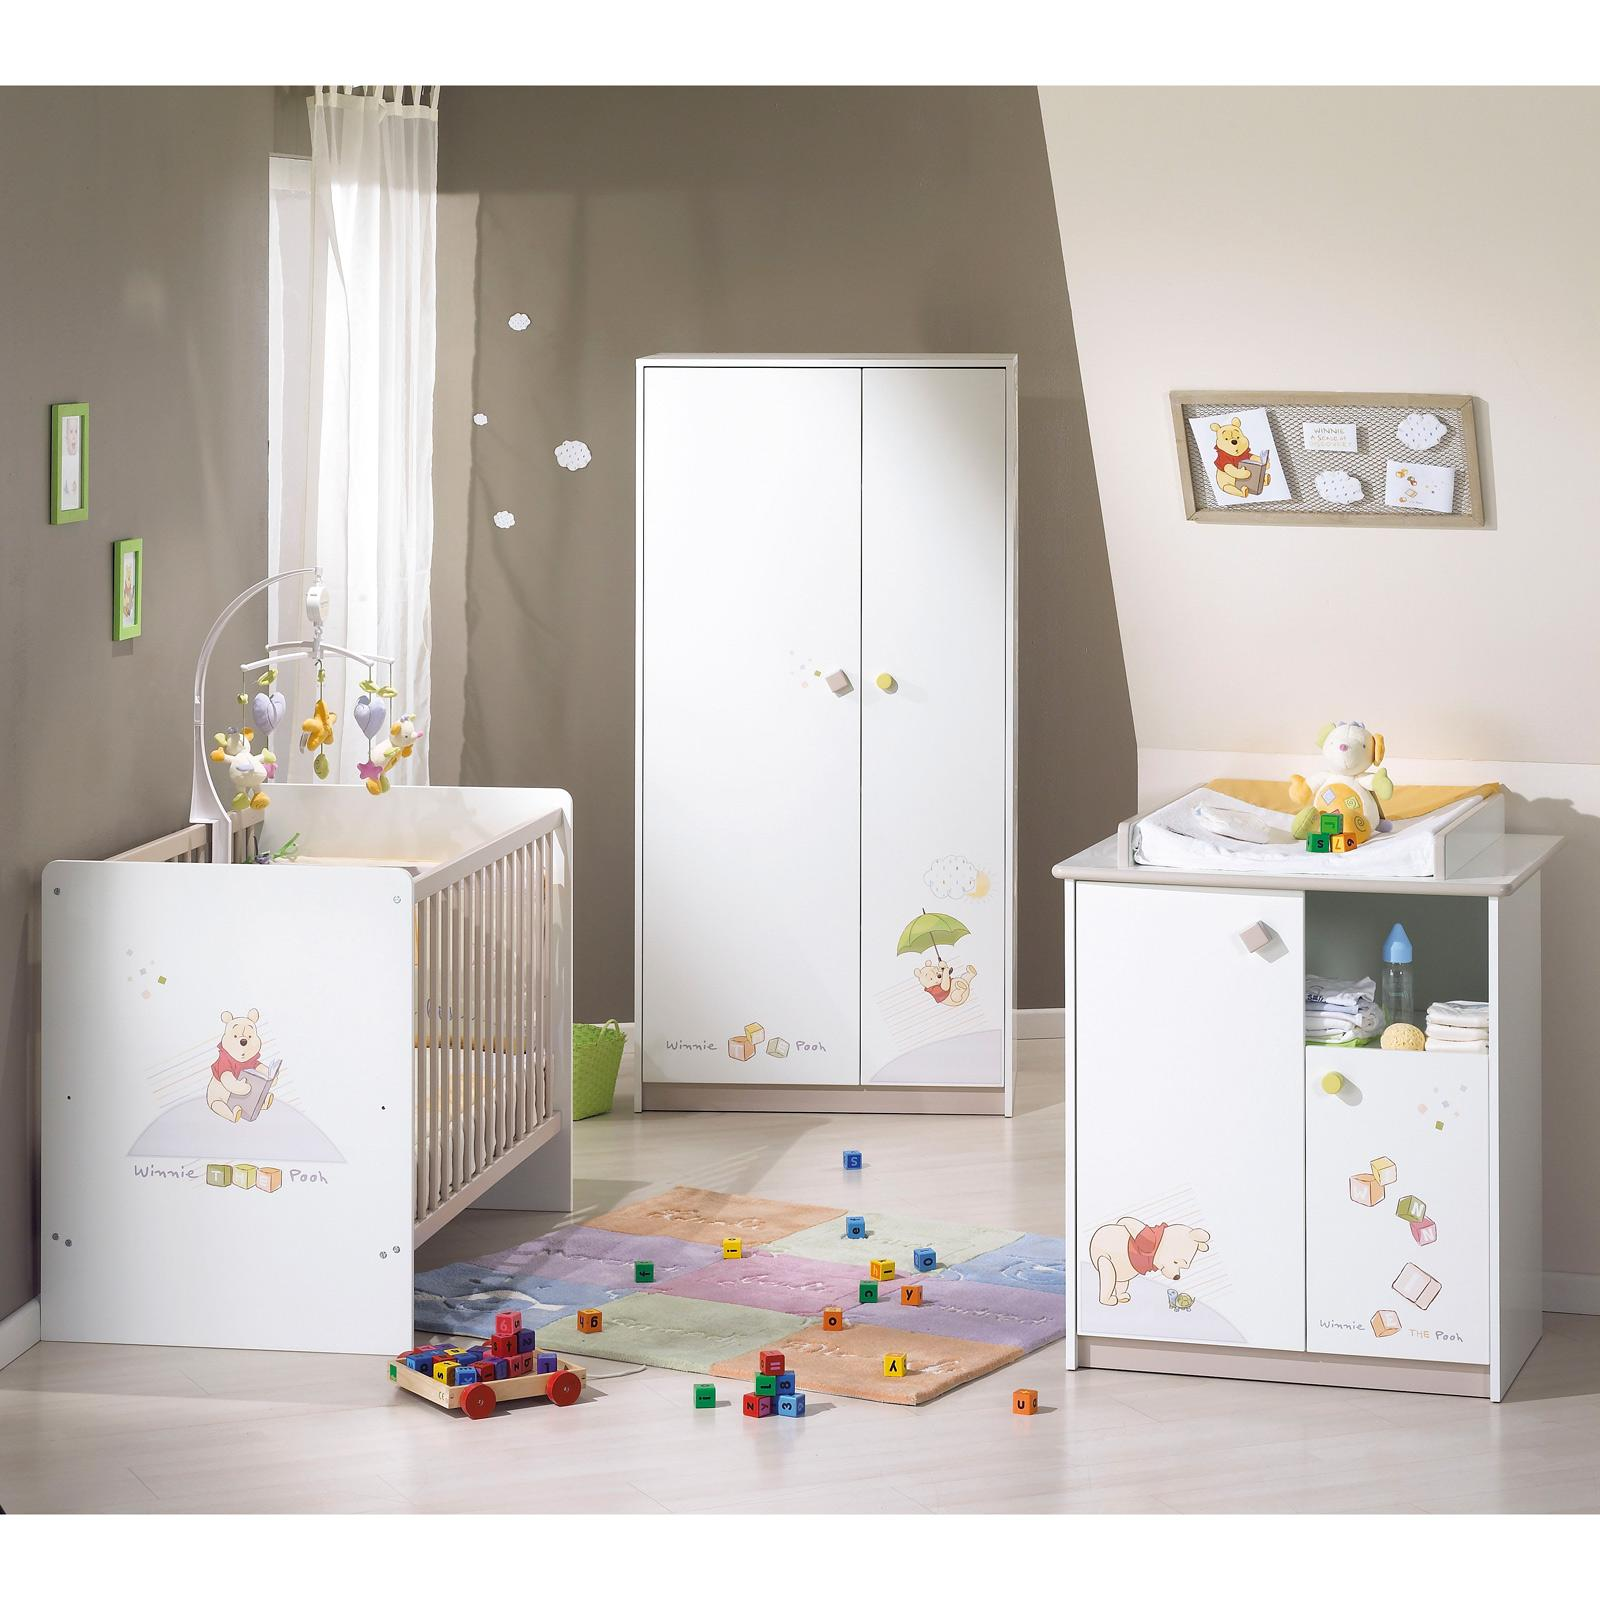 Decoration chambre winnie l ourson pas cher for Deco maison interieur pas cher